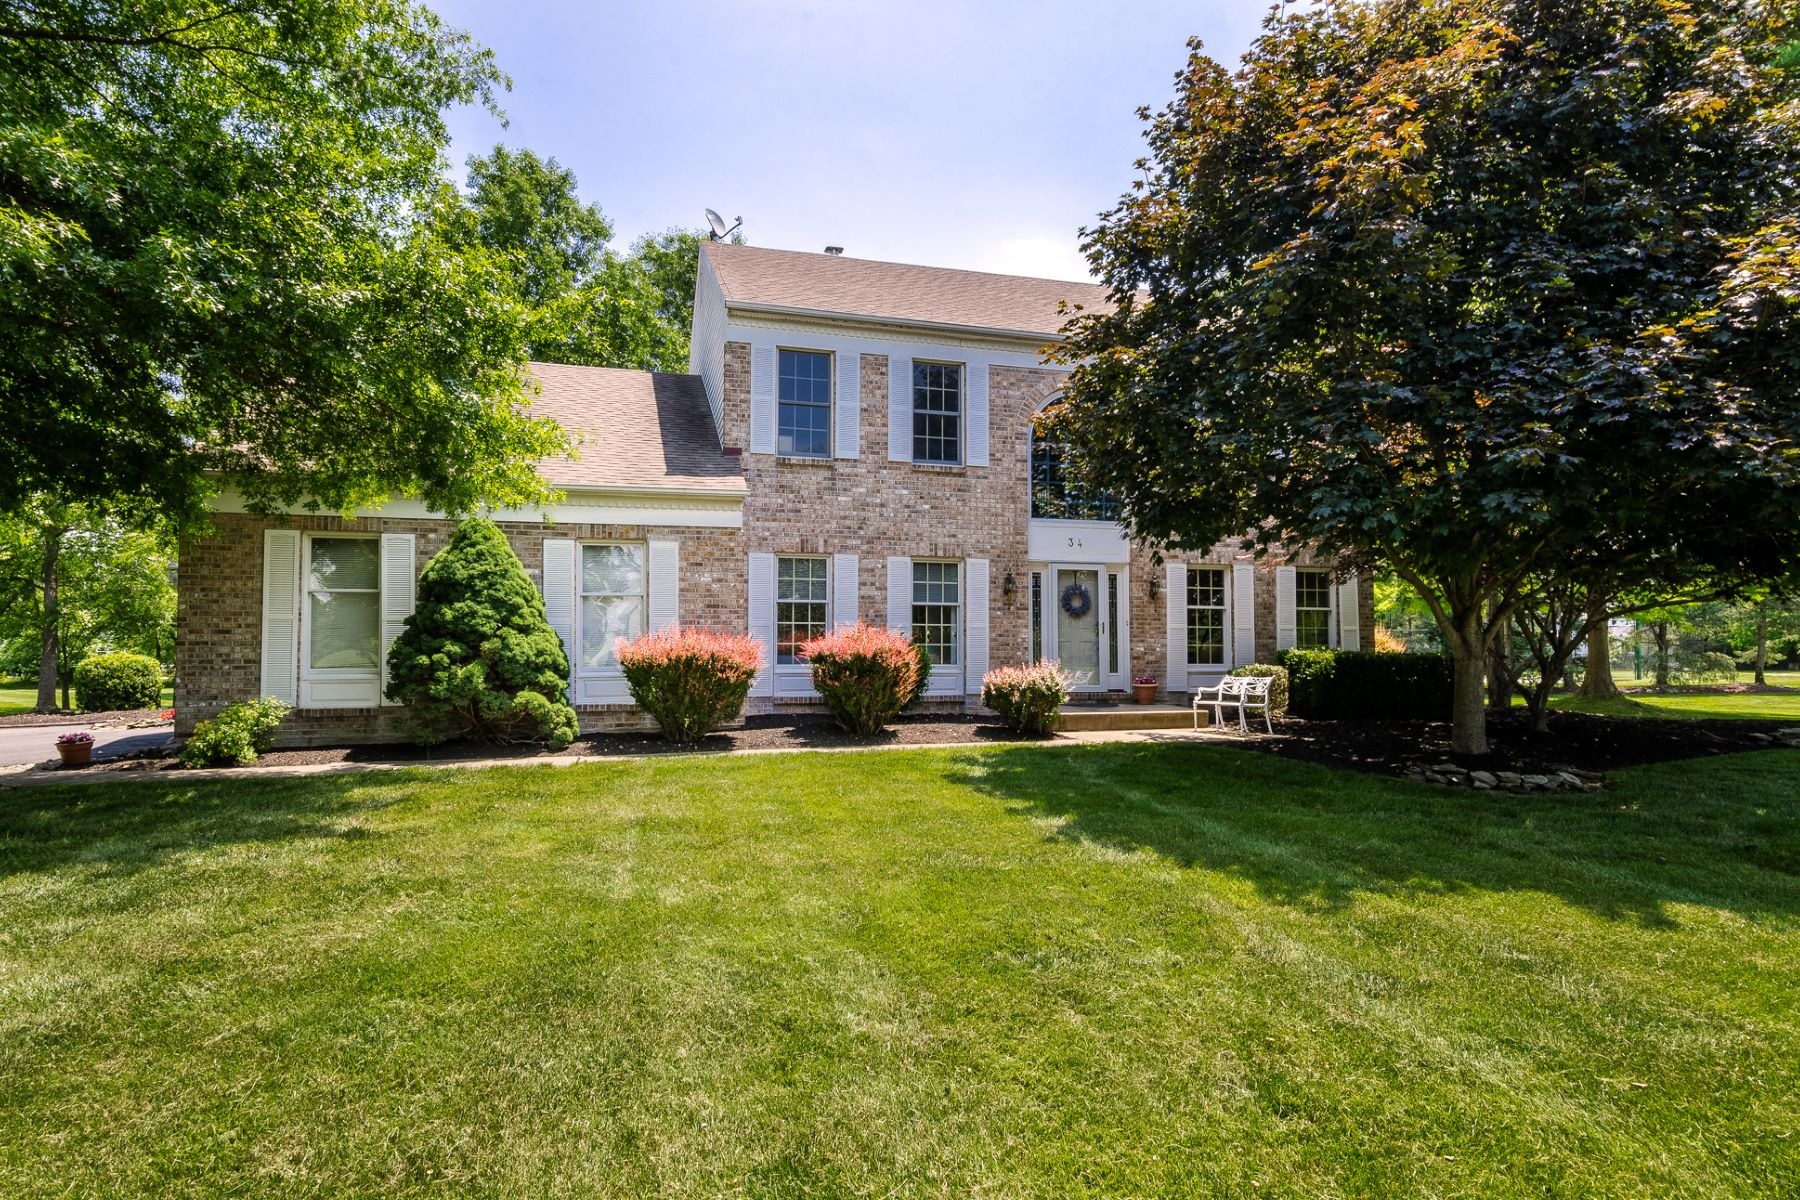 Property für Verkauf beim A True Home in Every Wonderful Way 34 Reed Drive South, West Windsor, New Jersey 08550 Vereinigte Staaten